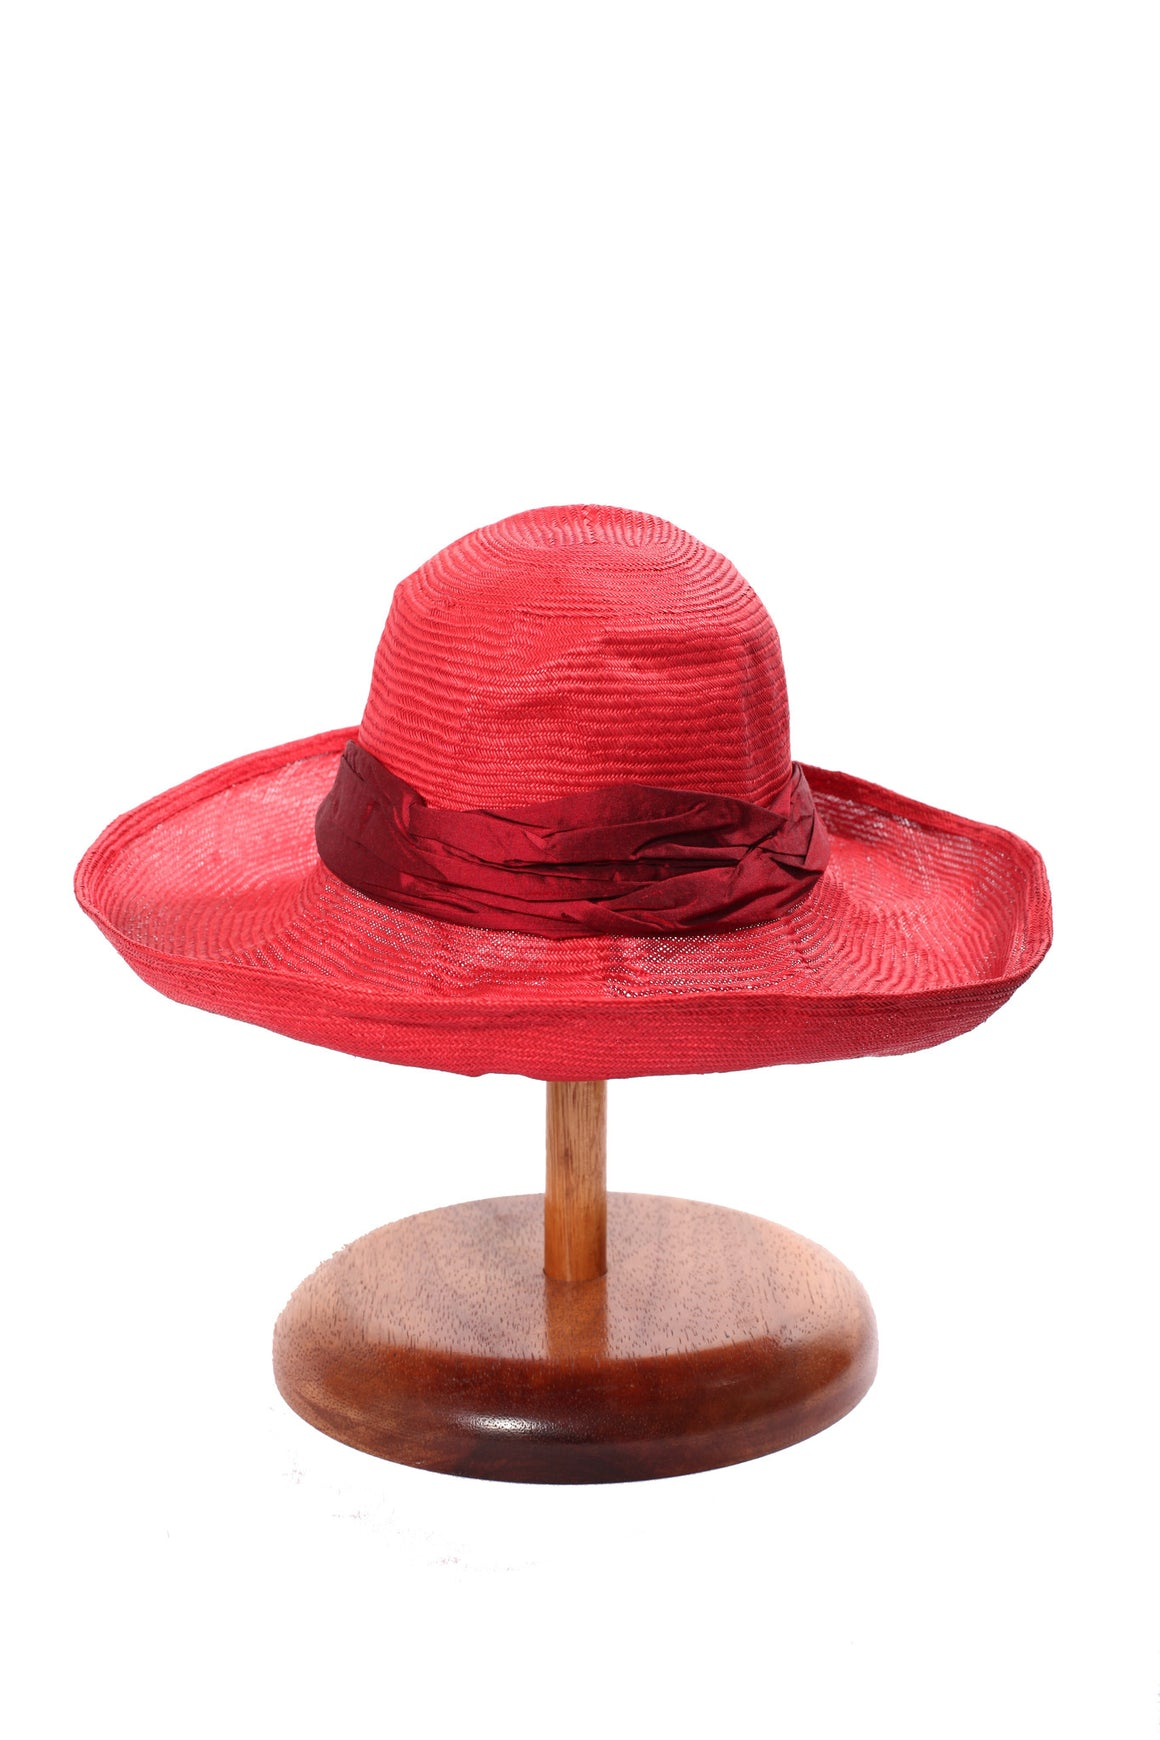 Maya Neumann Squash Hat - Red